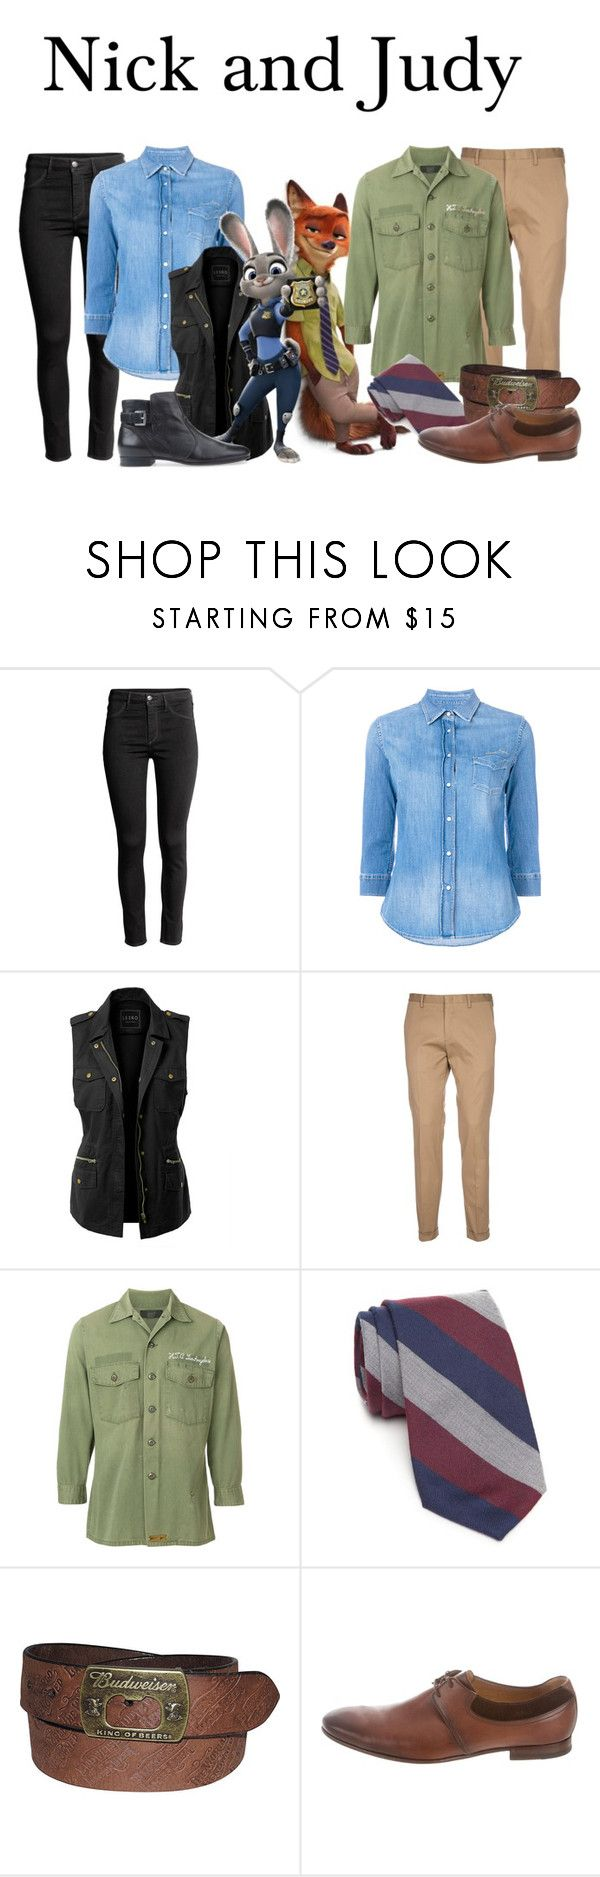 """""""&&✧;  Nick and Judy // dug"""" by disney-darlings ❤ liked on Polyvore featuring Jacob Cohёn, LE3NO, Paul Smith, Hollywood Trading Company, Crown & Ivy, Gucci and Geox"""